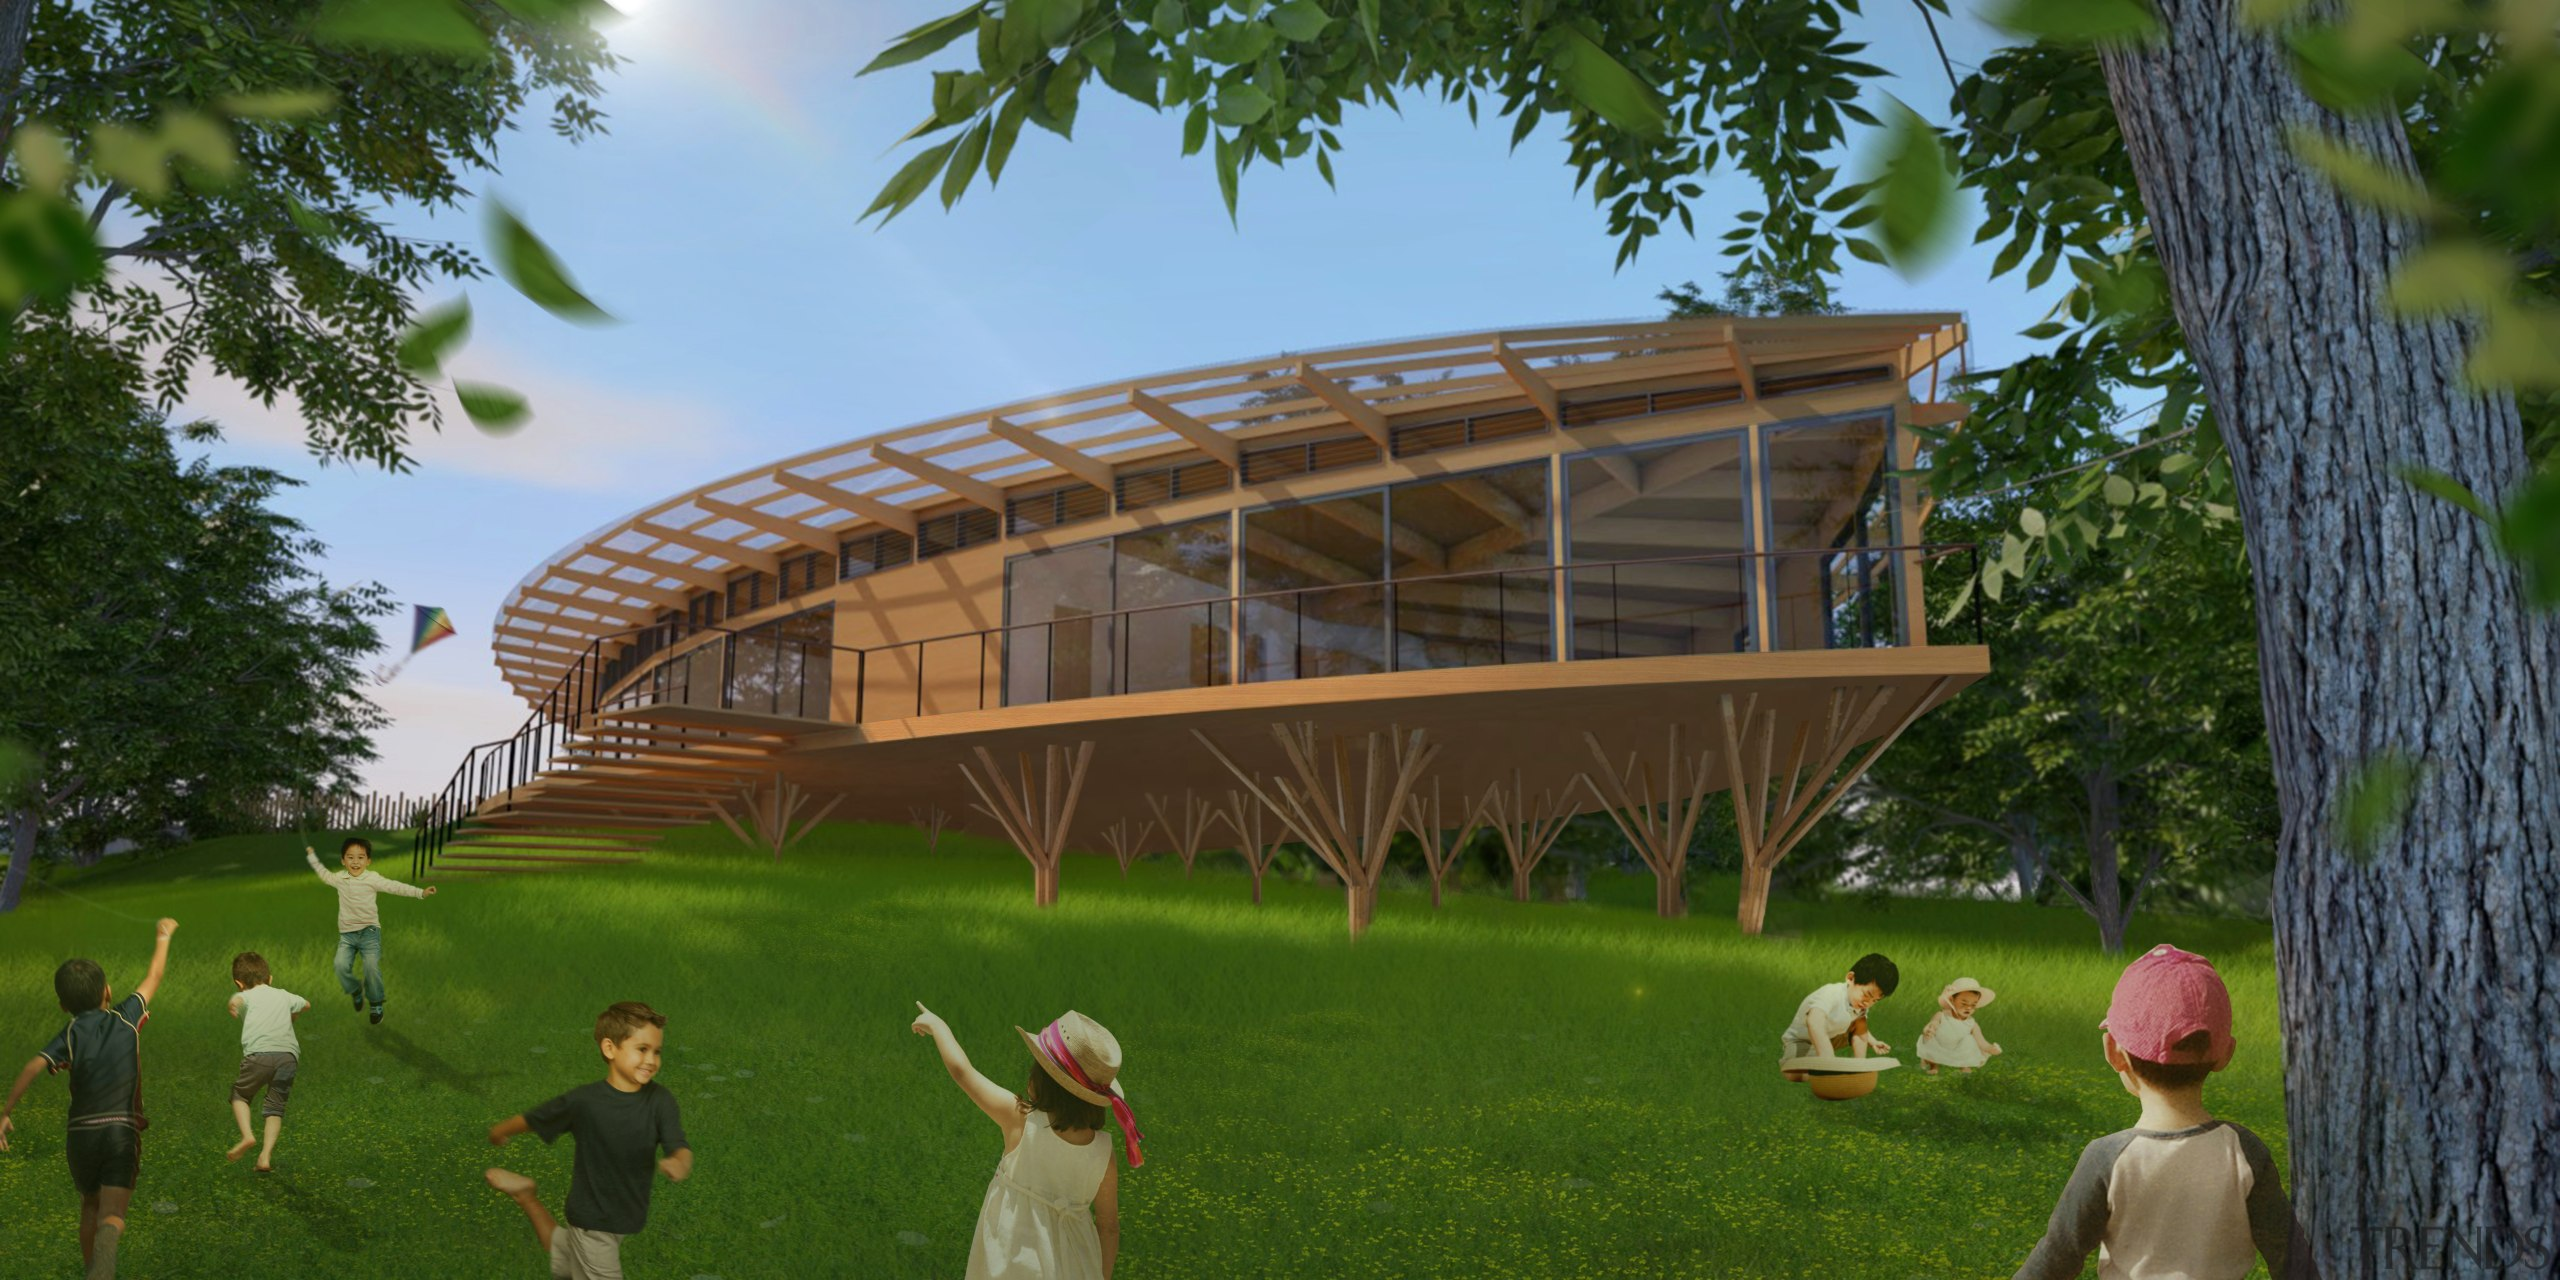 A world first in early childhood education – architecture, grass, leisure, pavilion, plant, structure, tree, brown